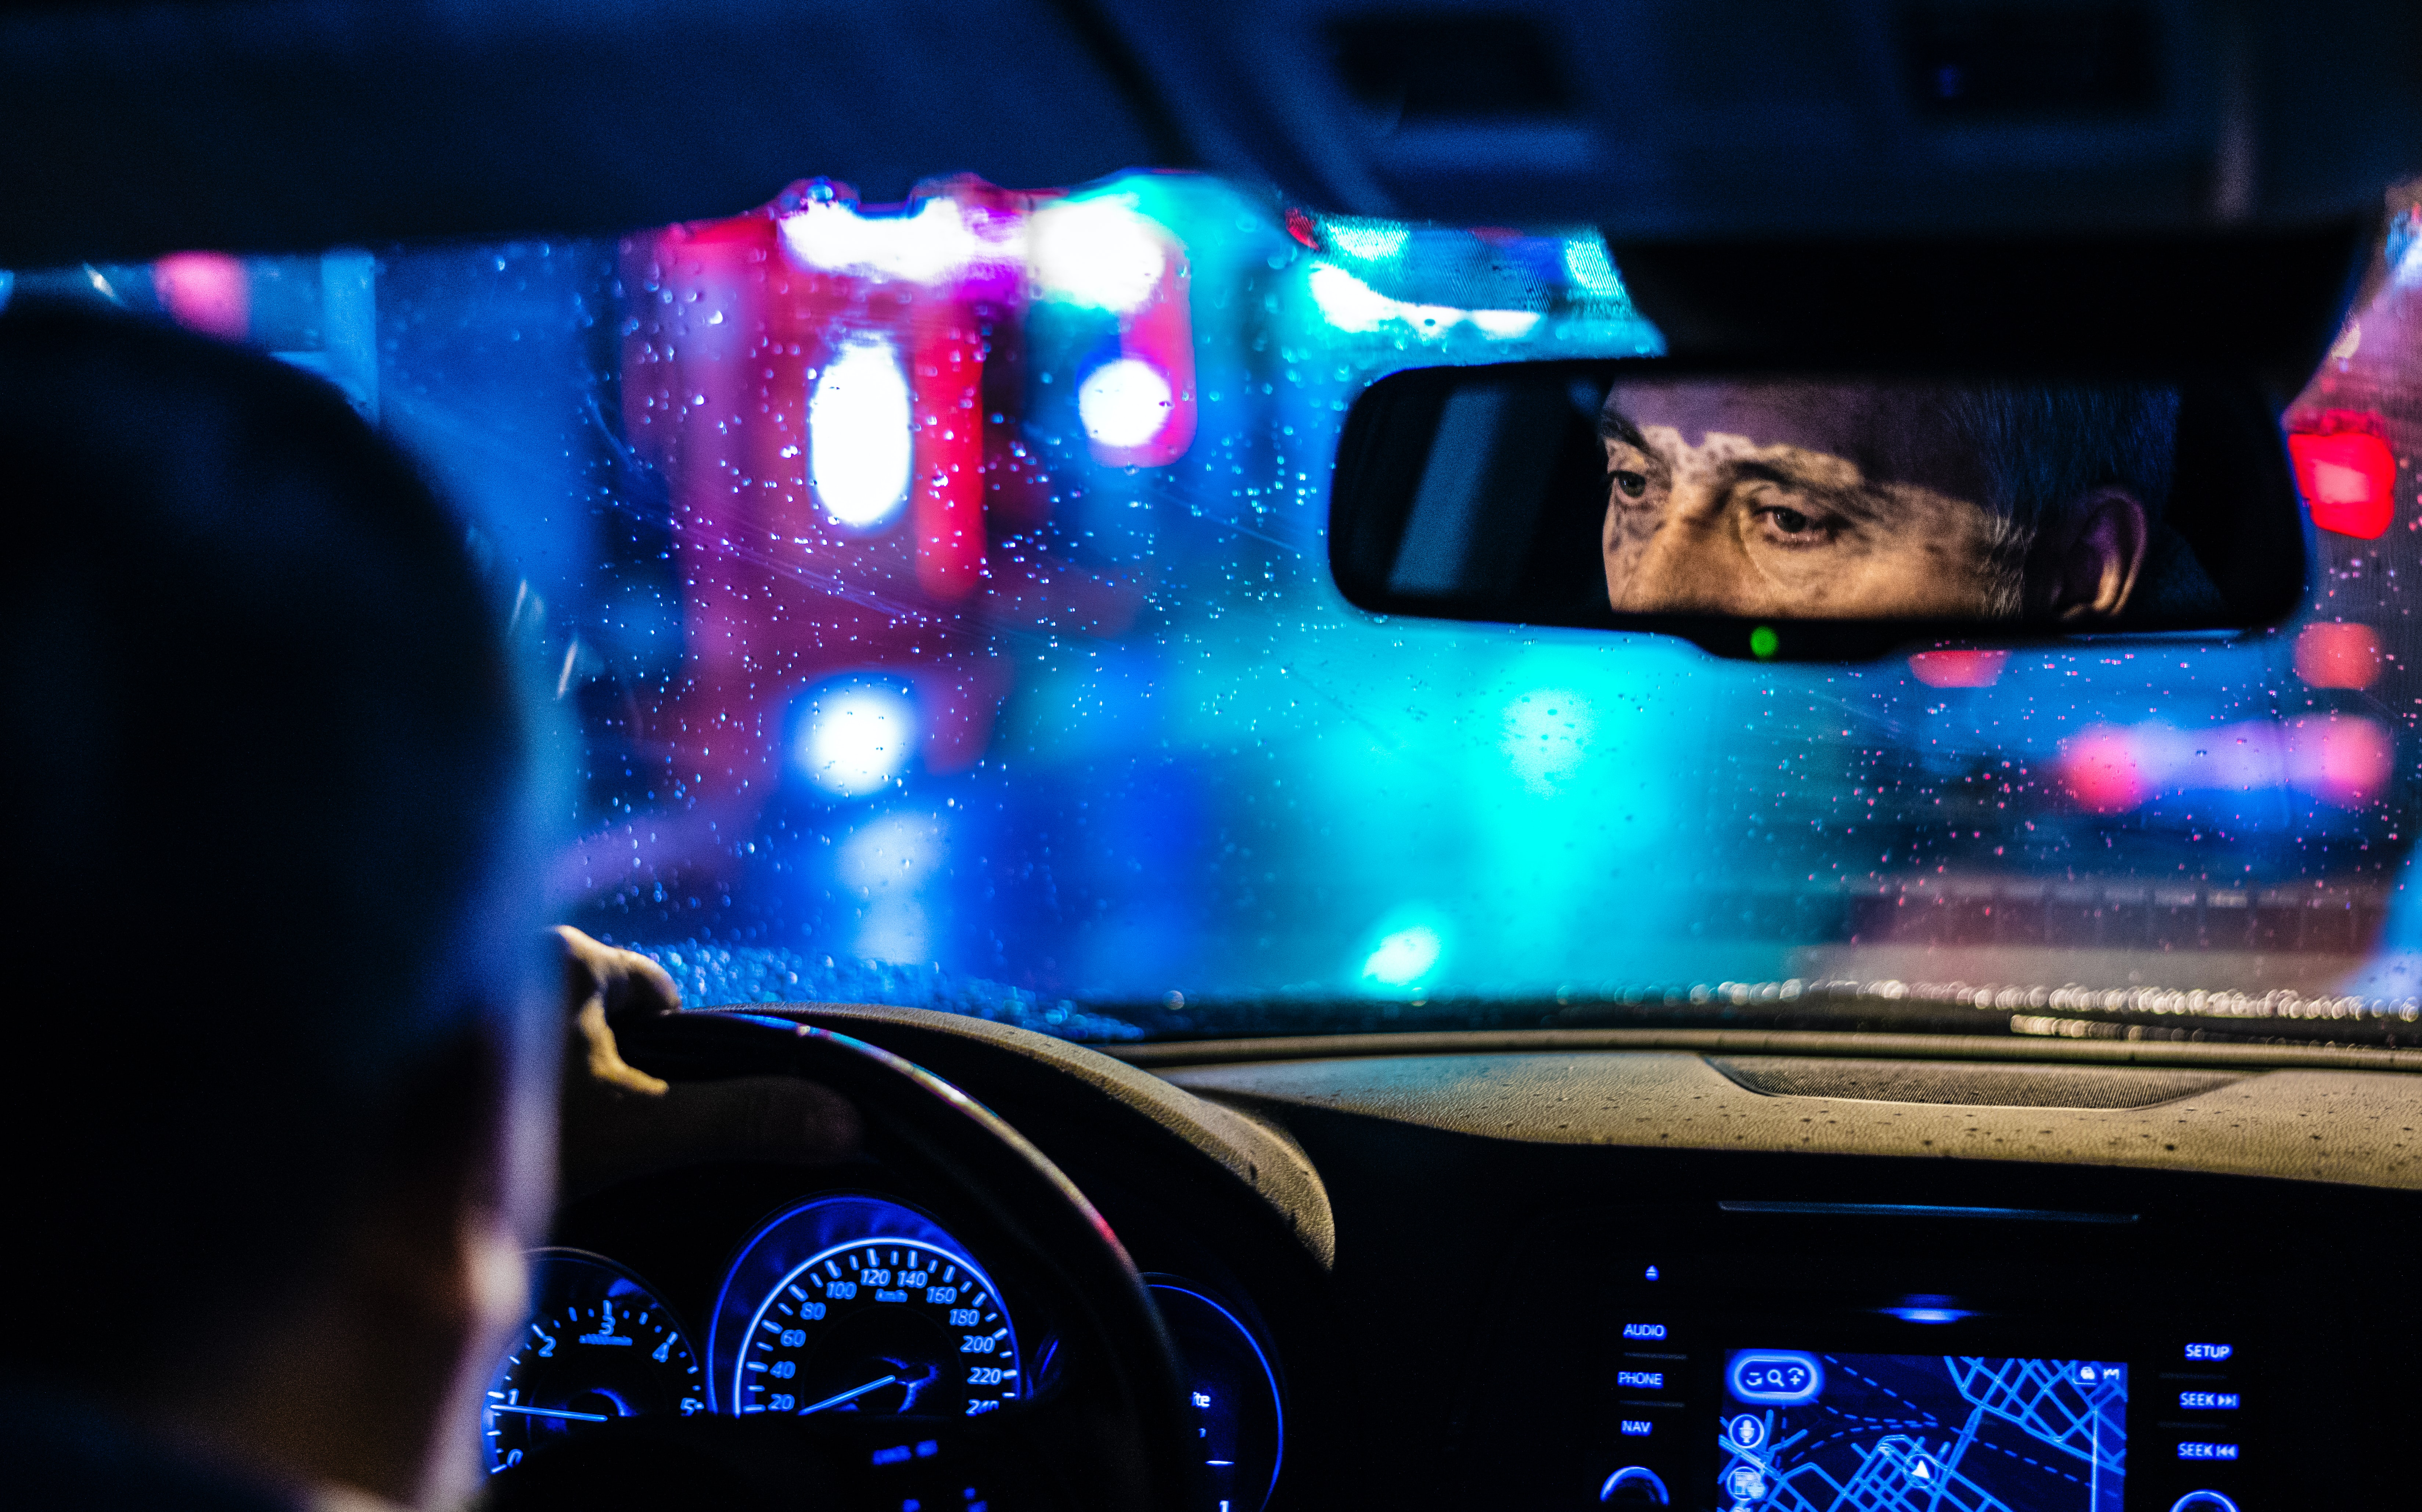 A photo from the back seat of a taxi shows the reflection of an uber driver's face in the mirror while he drives at night.